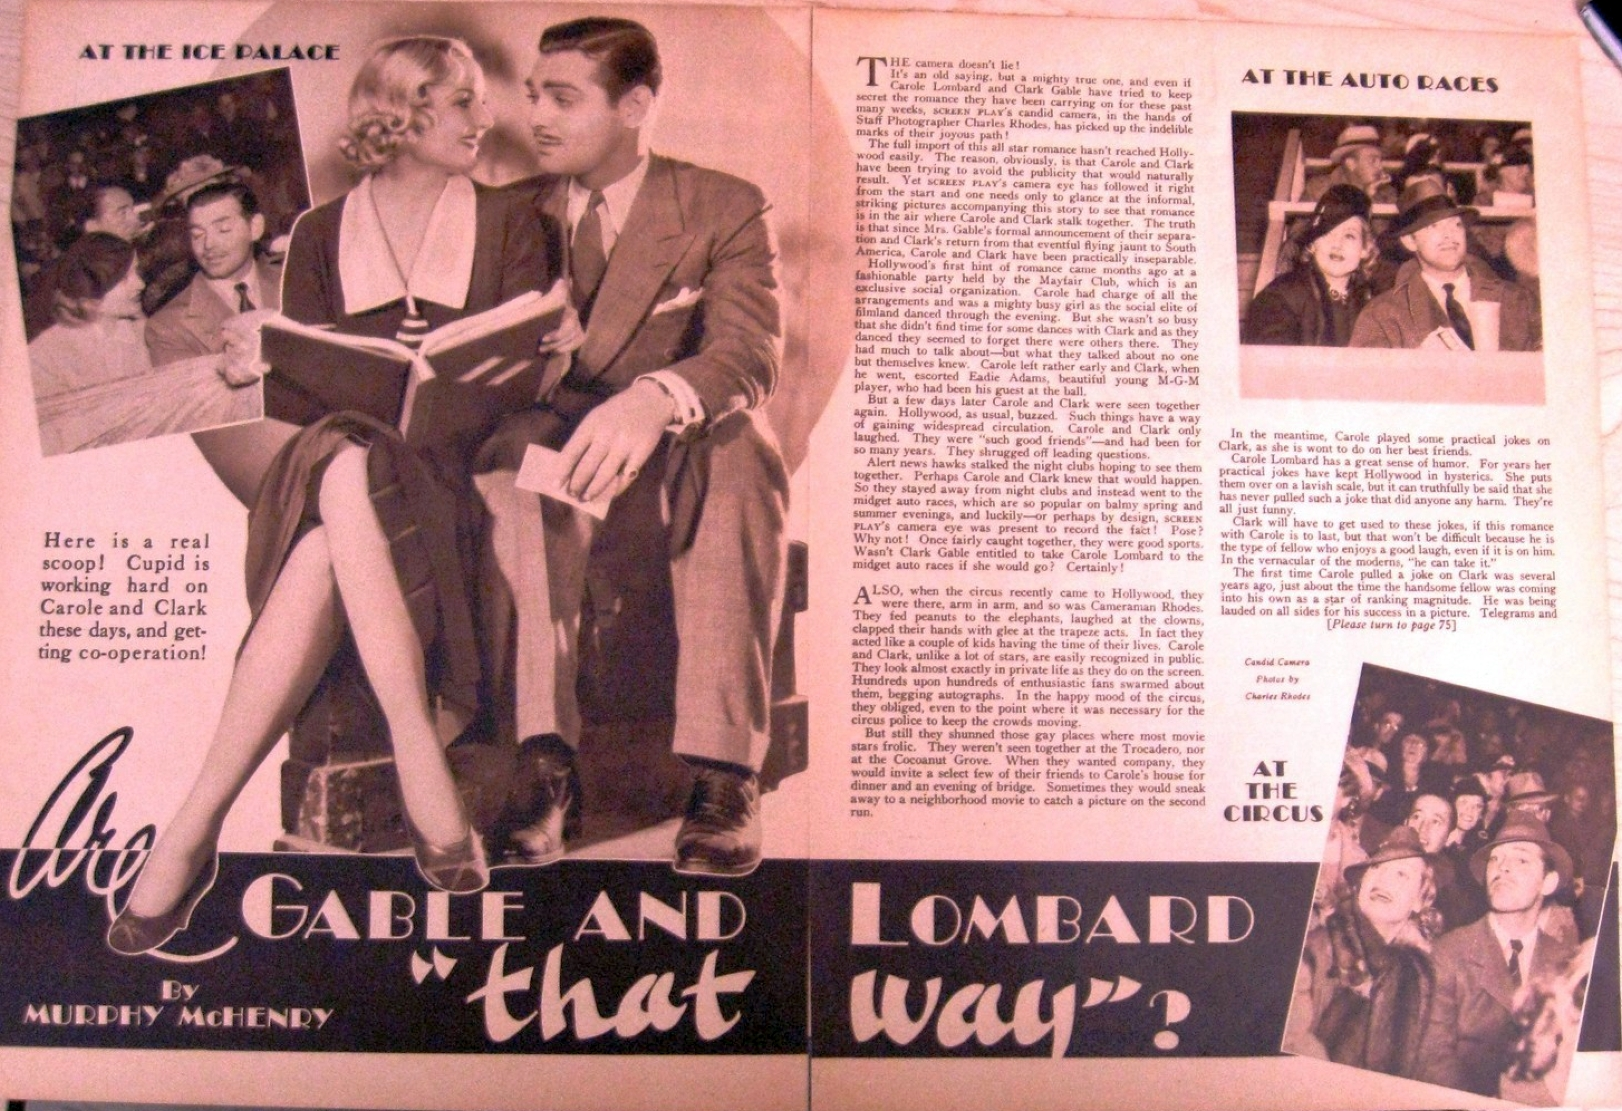 carole lombard screen play are gable and lombard that way large